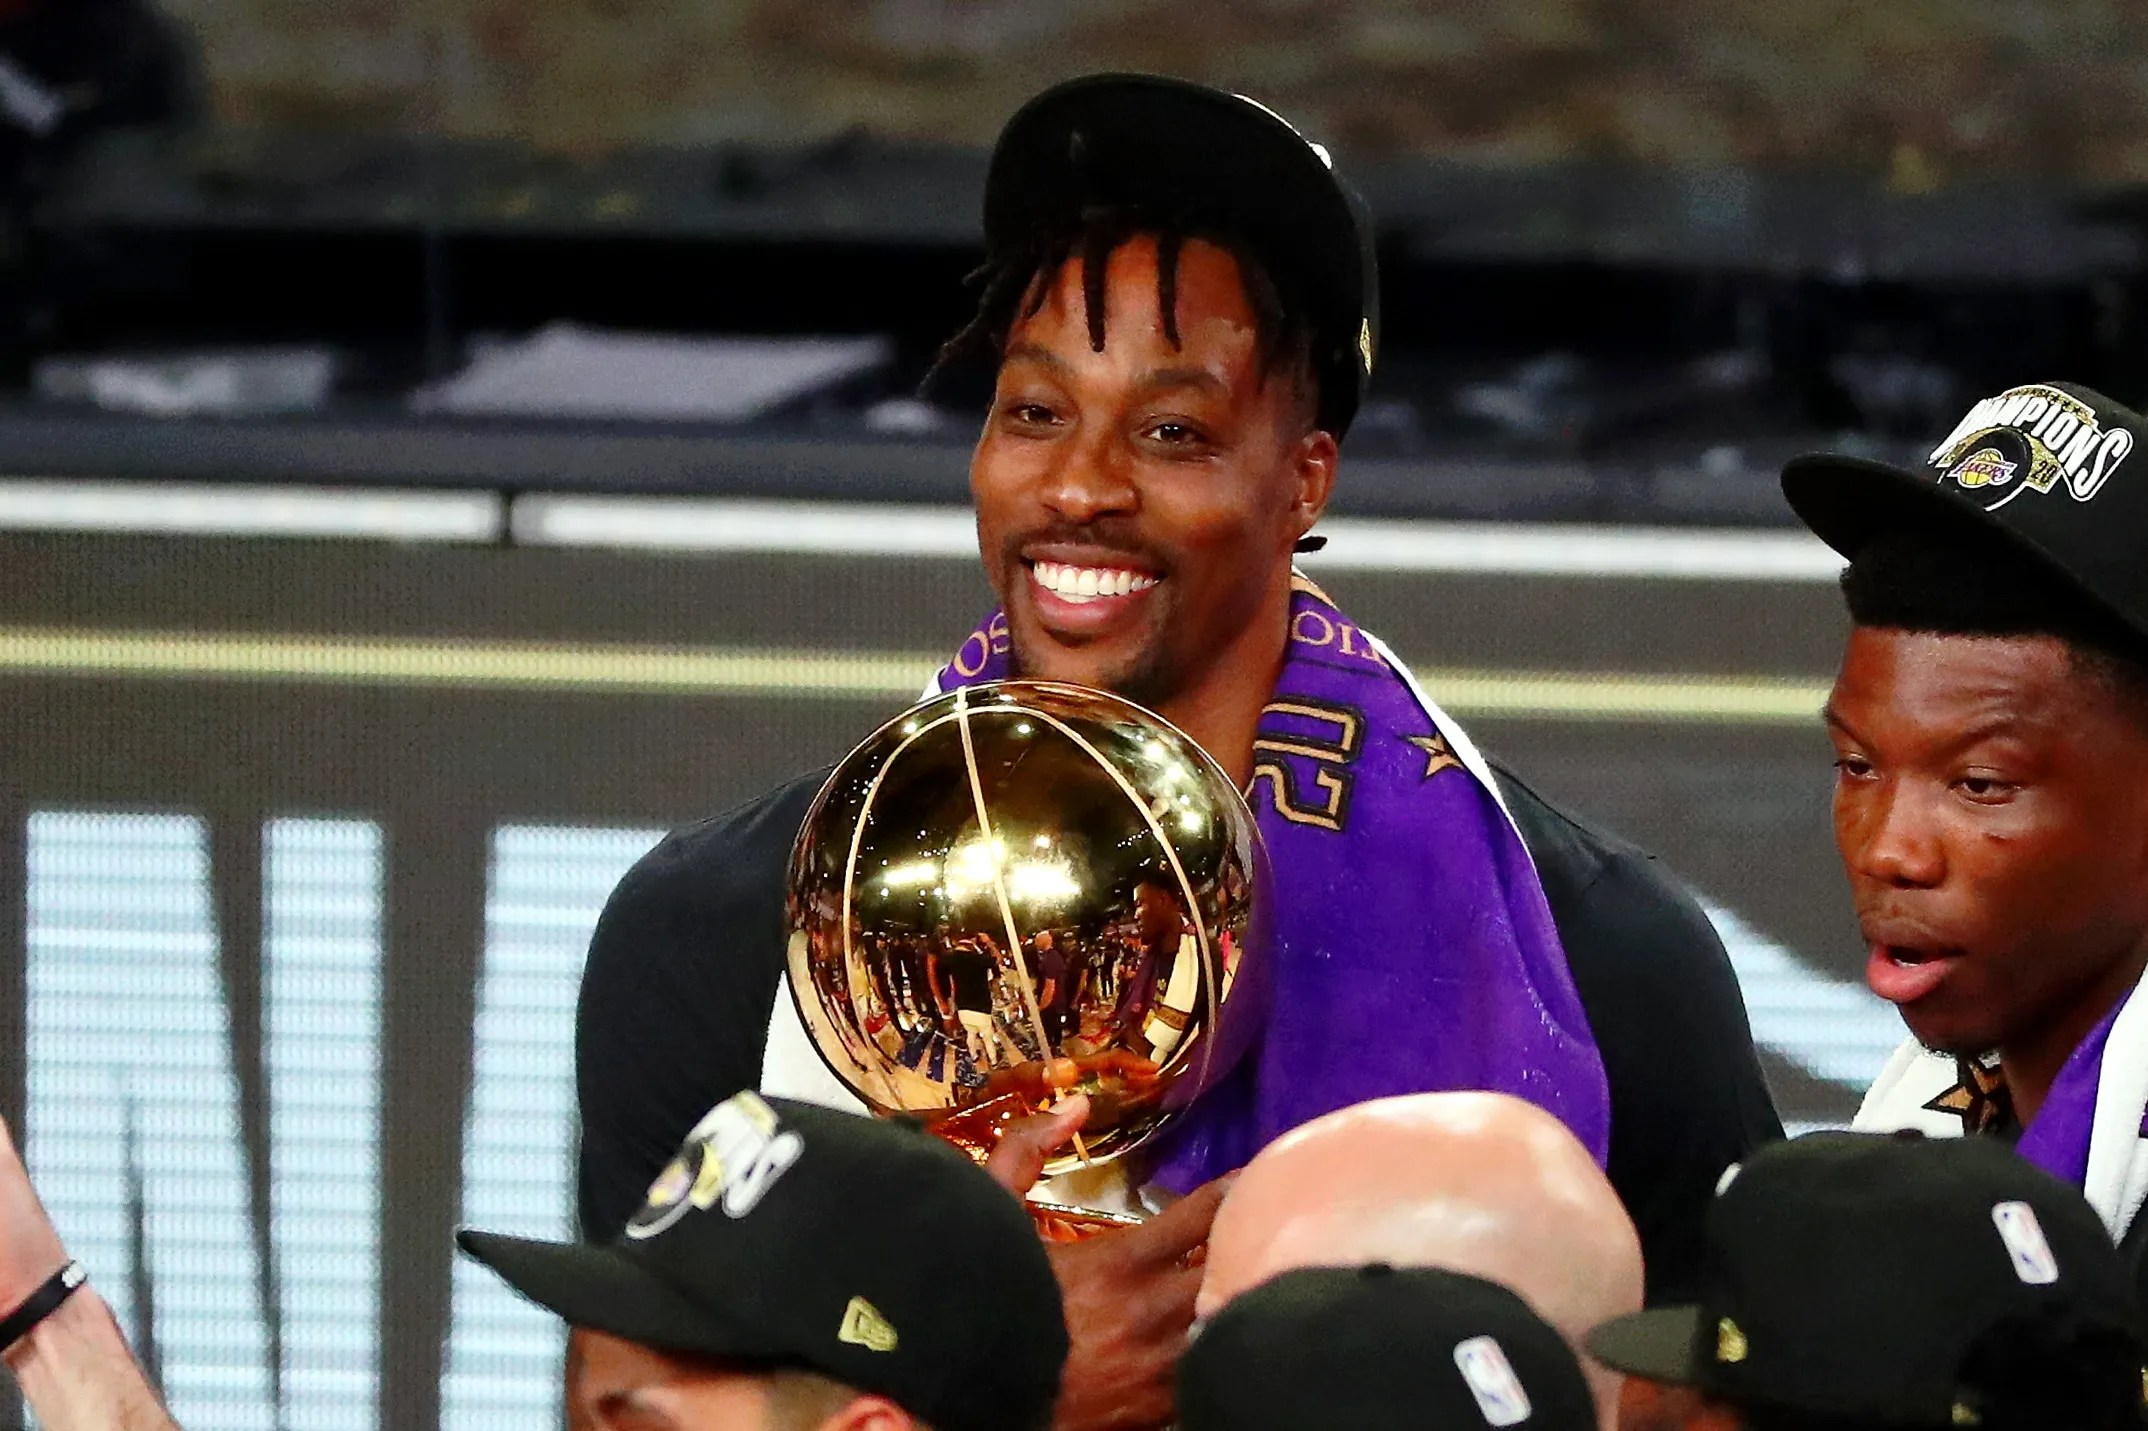 Dwight Howard will be joining the Philadelphia 76ers.